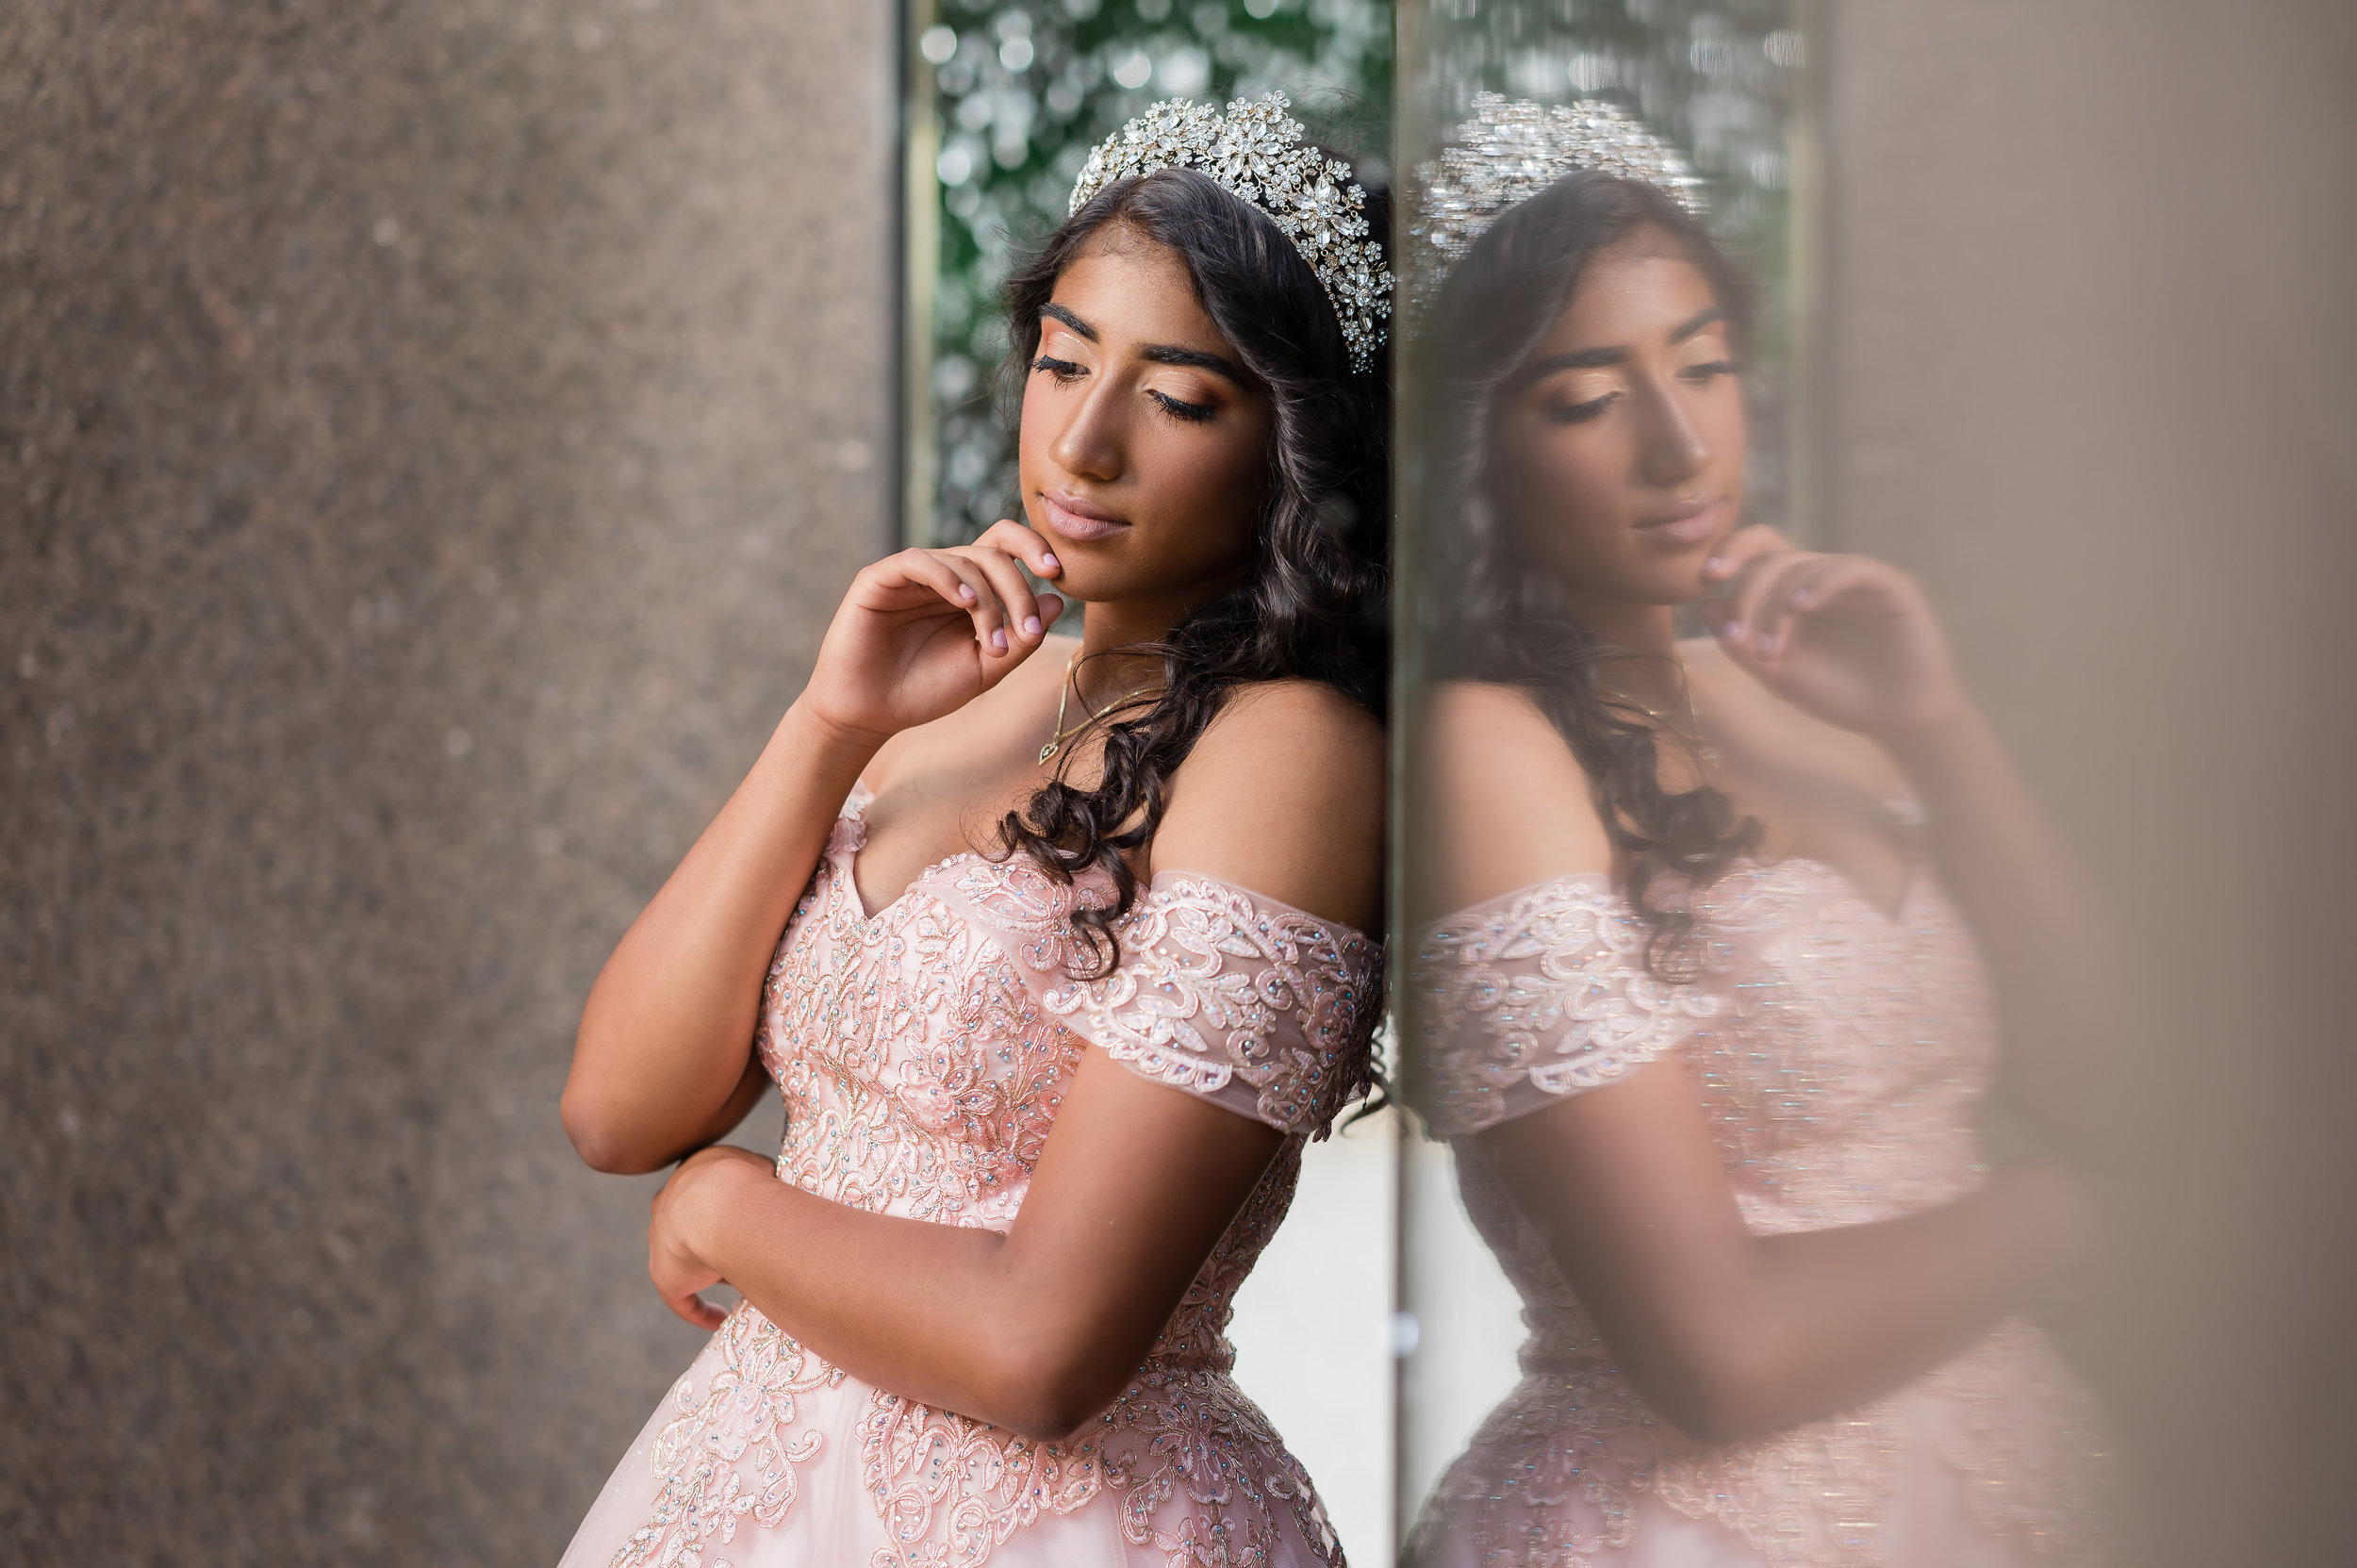 Emily-Quince-Session-Garcia-Photography-7881.jpg